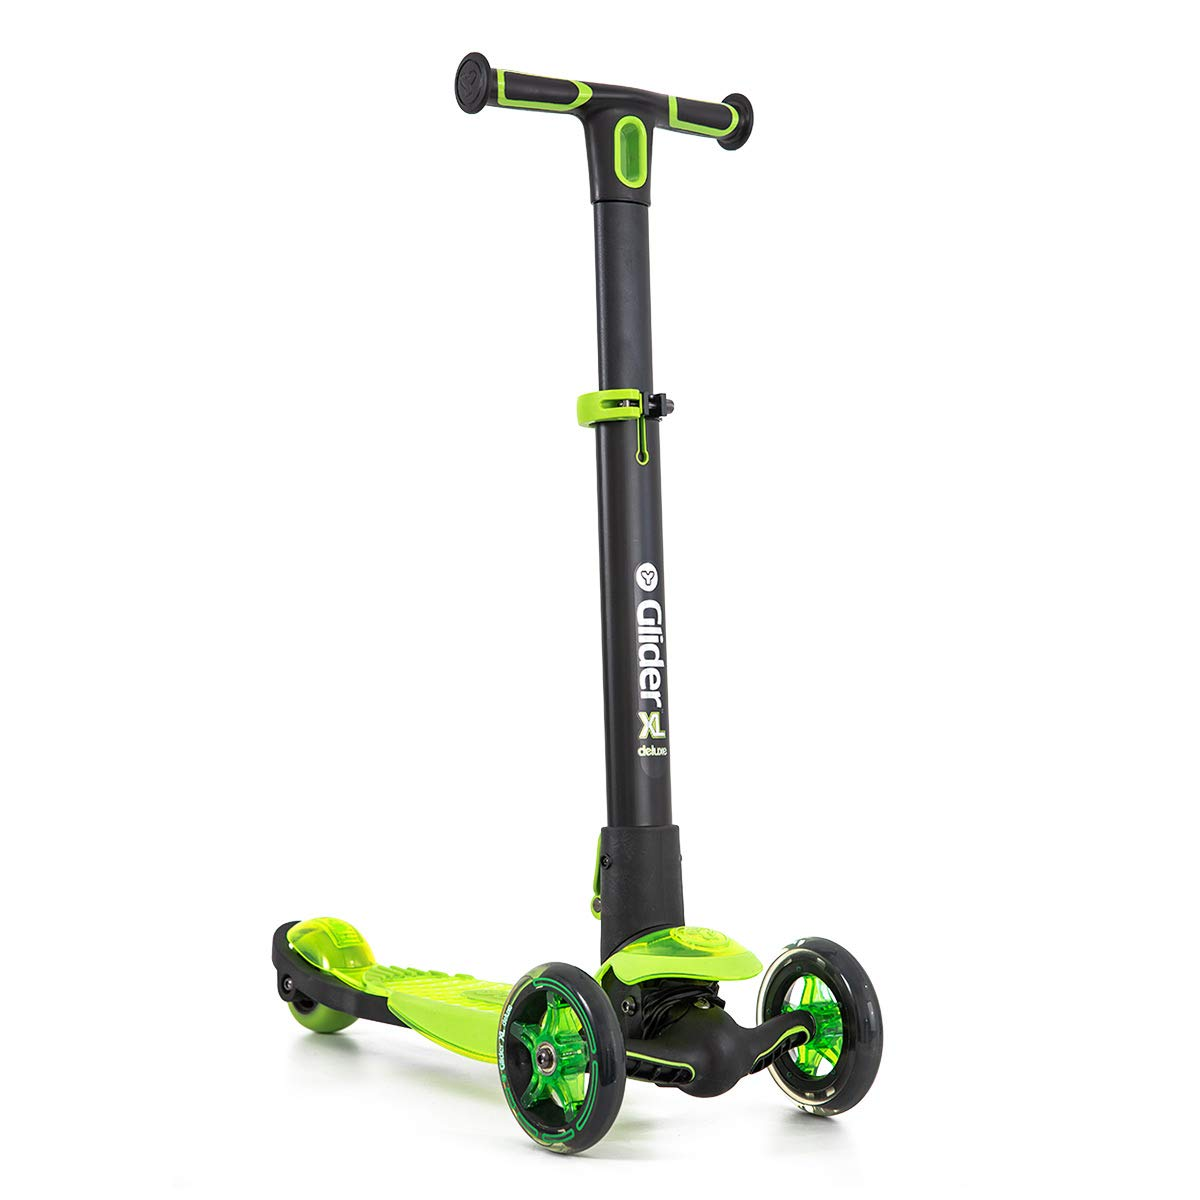 Yvolution Y Glider XL Deluxe - Foldable Kids Kick Scooter (Green)